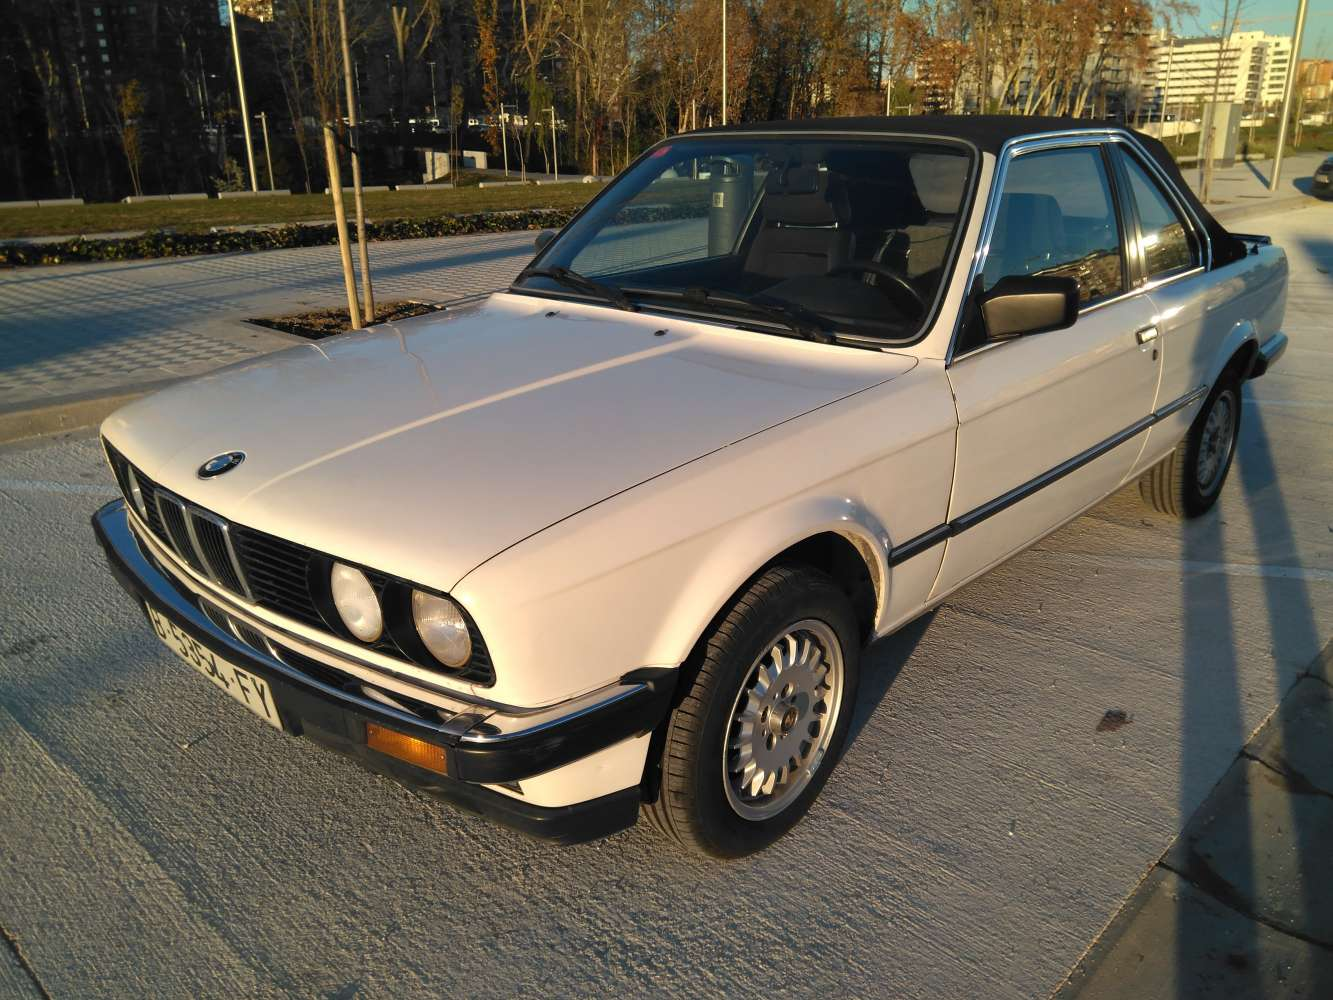 BMW E30 323i Baur (Recaro And LSD) 1983